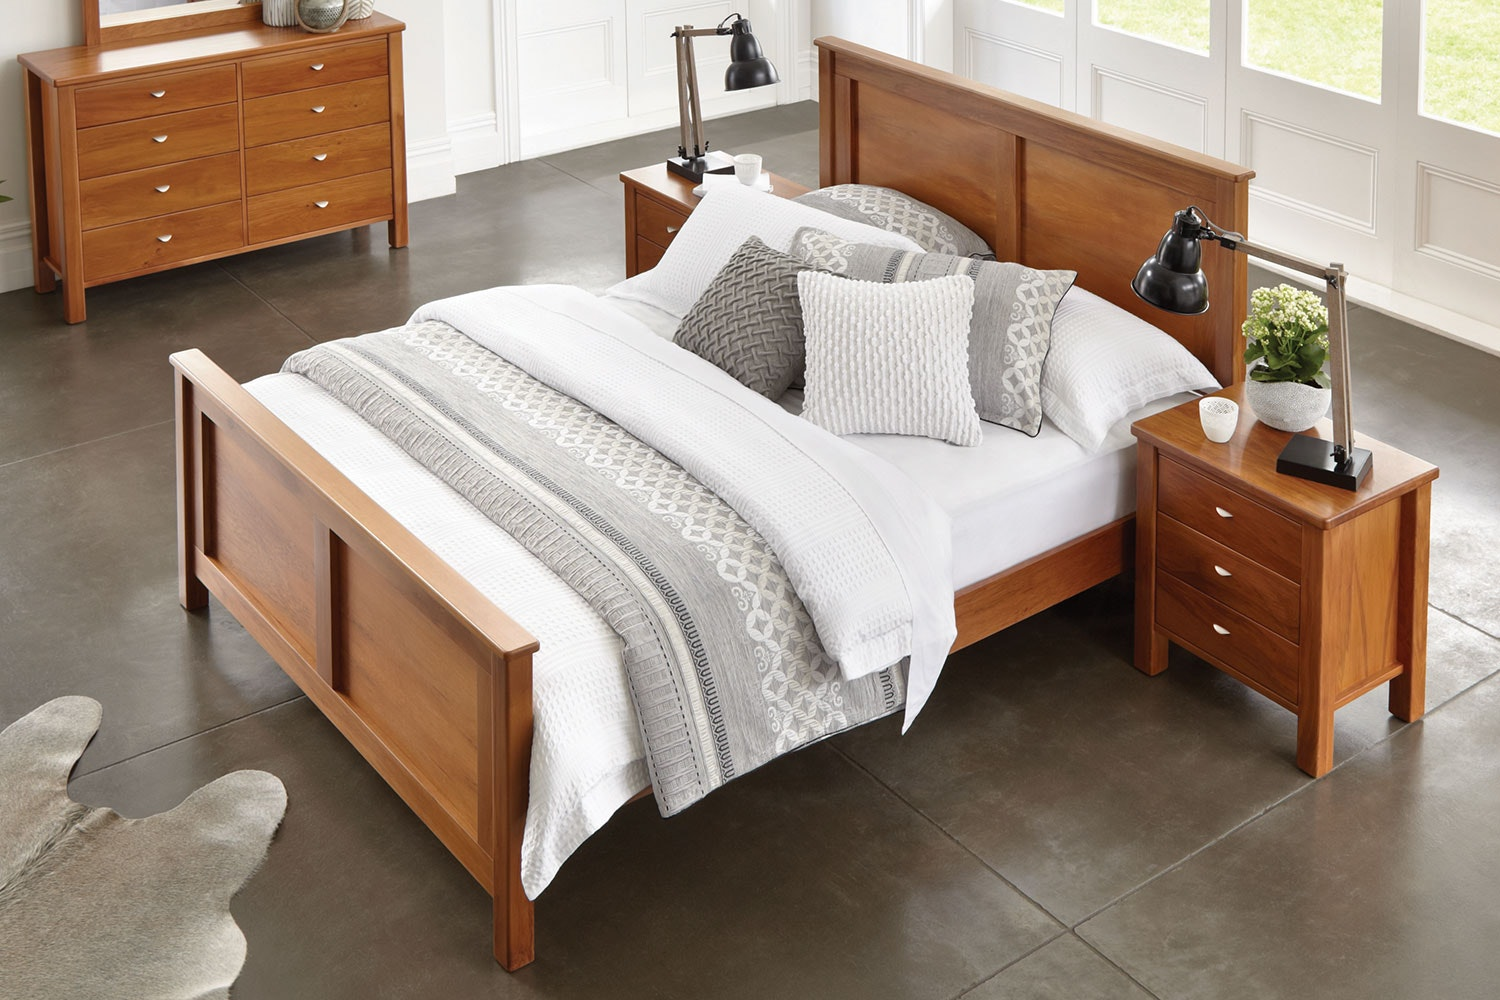 Riversdale Queen Solid Slat Bed Frame by Marlex Furniture